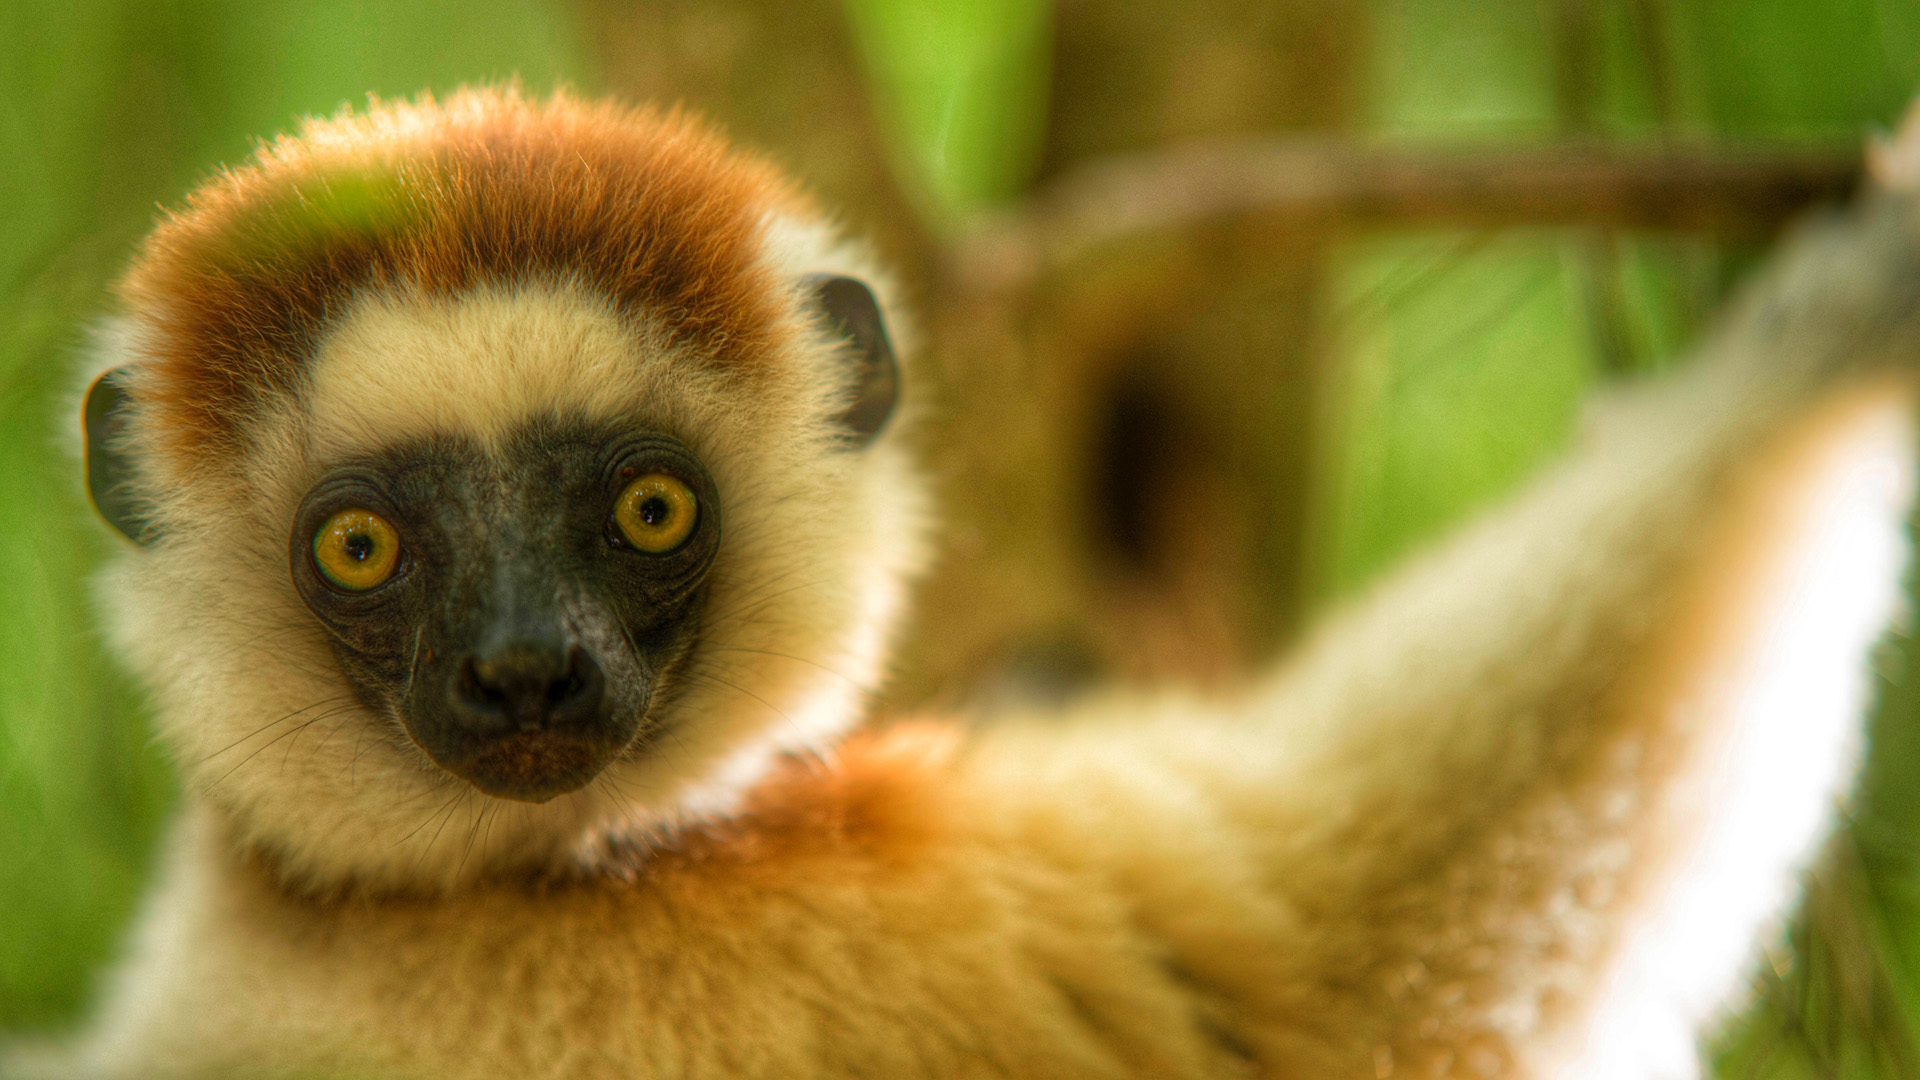 lemurs in madagascar assignment essay The red-ruffed lemur is found in the rainforests of the masoala peninsula in northeastern madagascar red-ruffed lemurs live in groups and practice a form of communal.